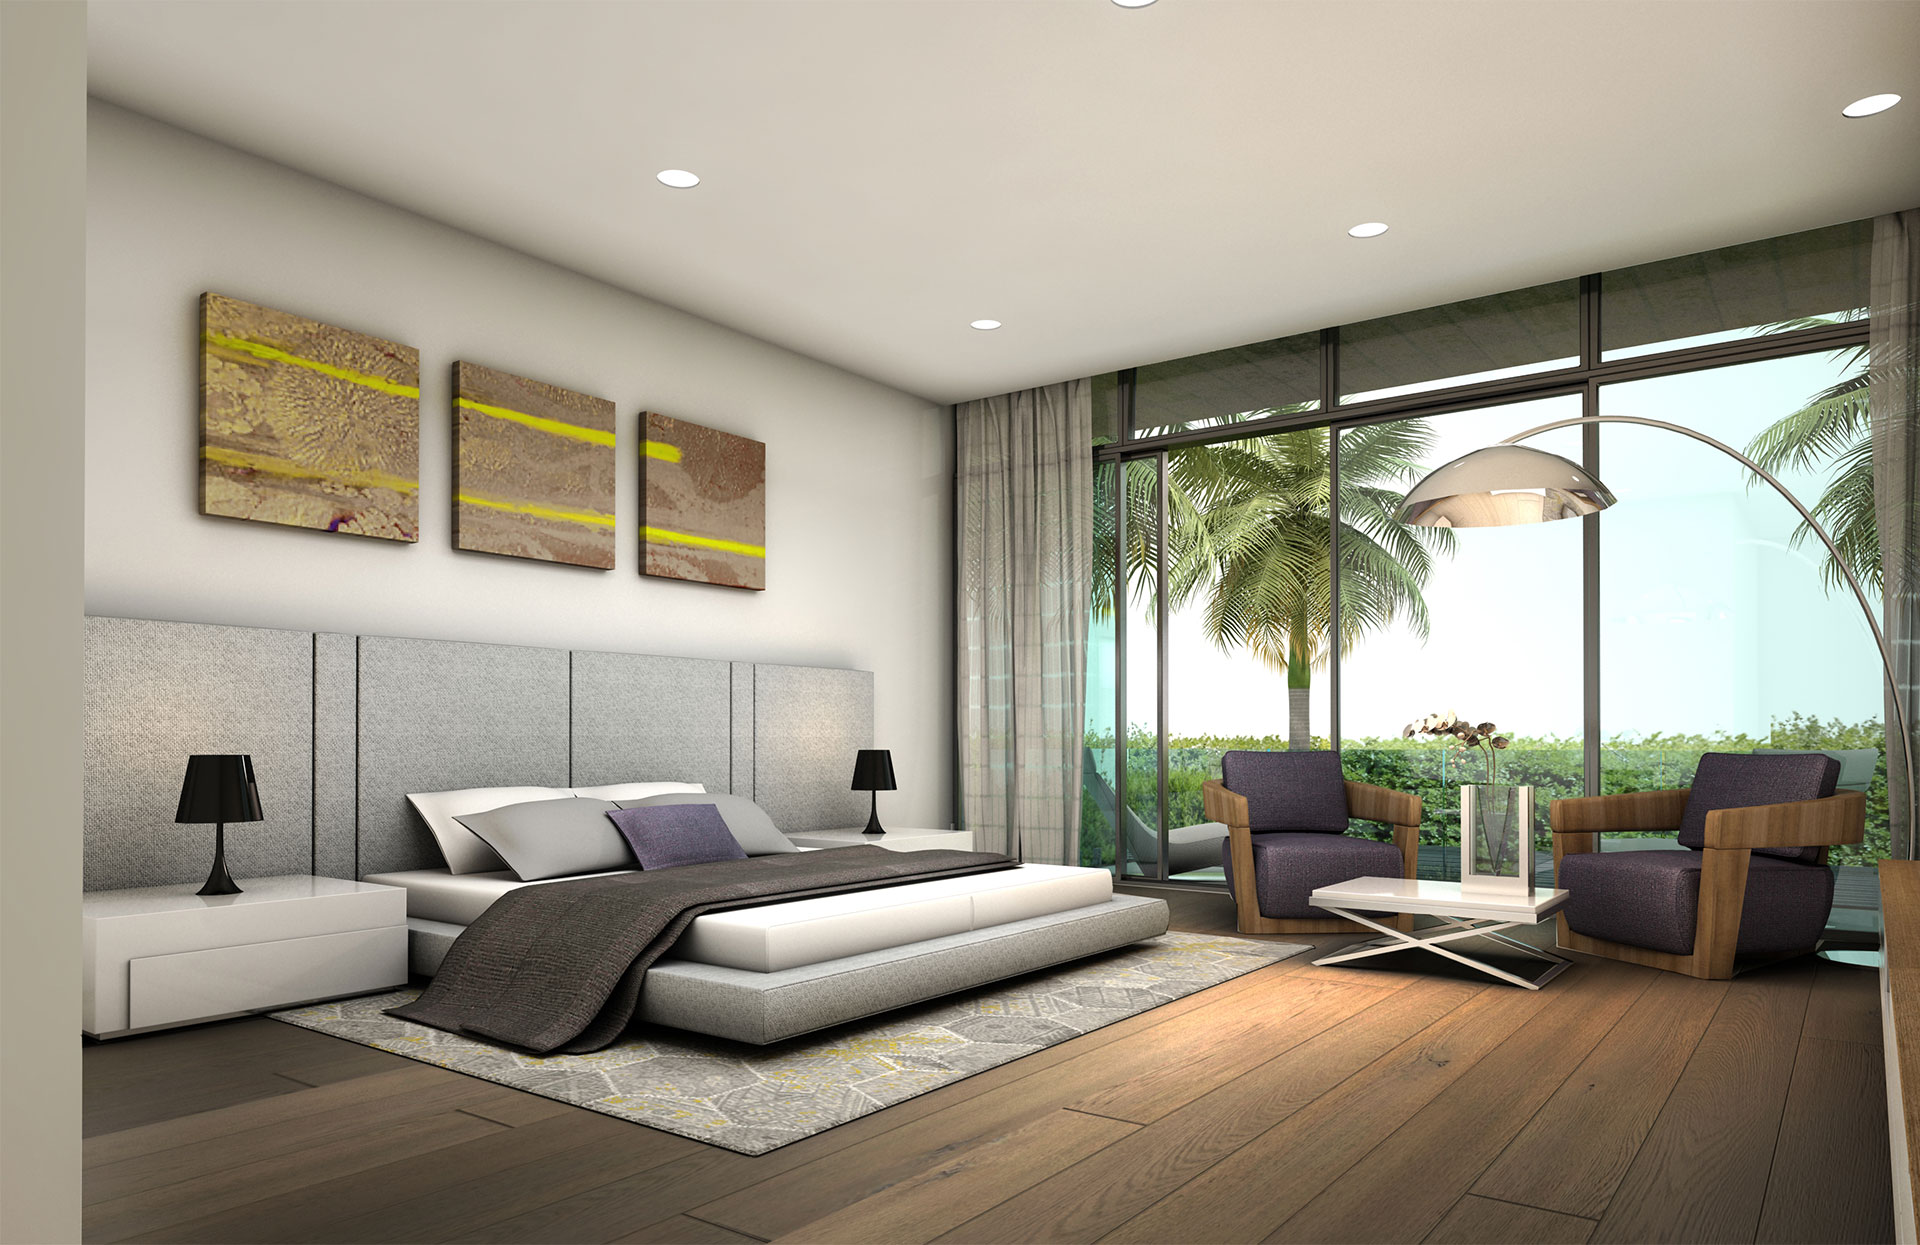 Construction Administration project in Mola Ave, Fort Lauderdale